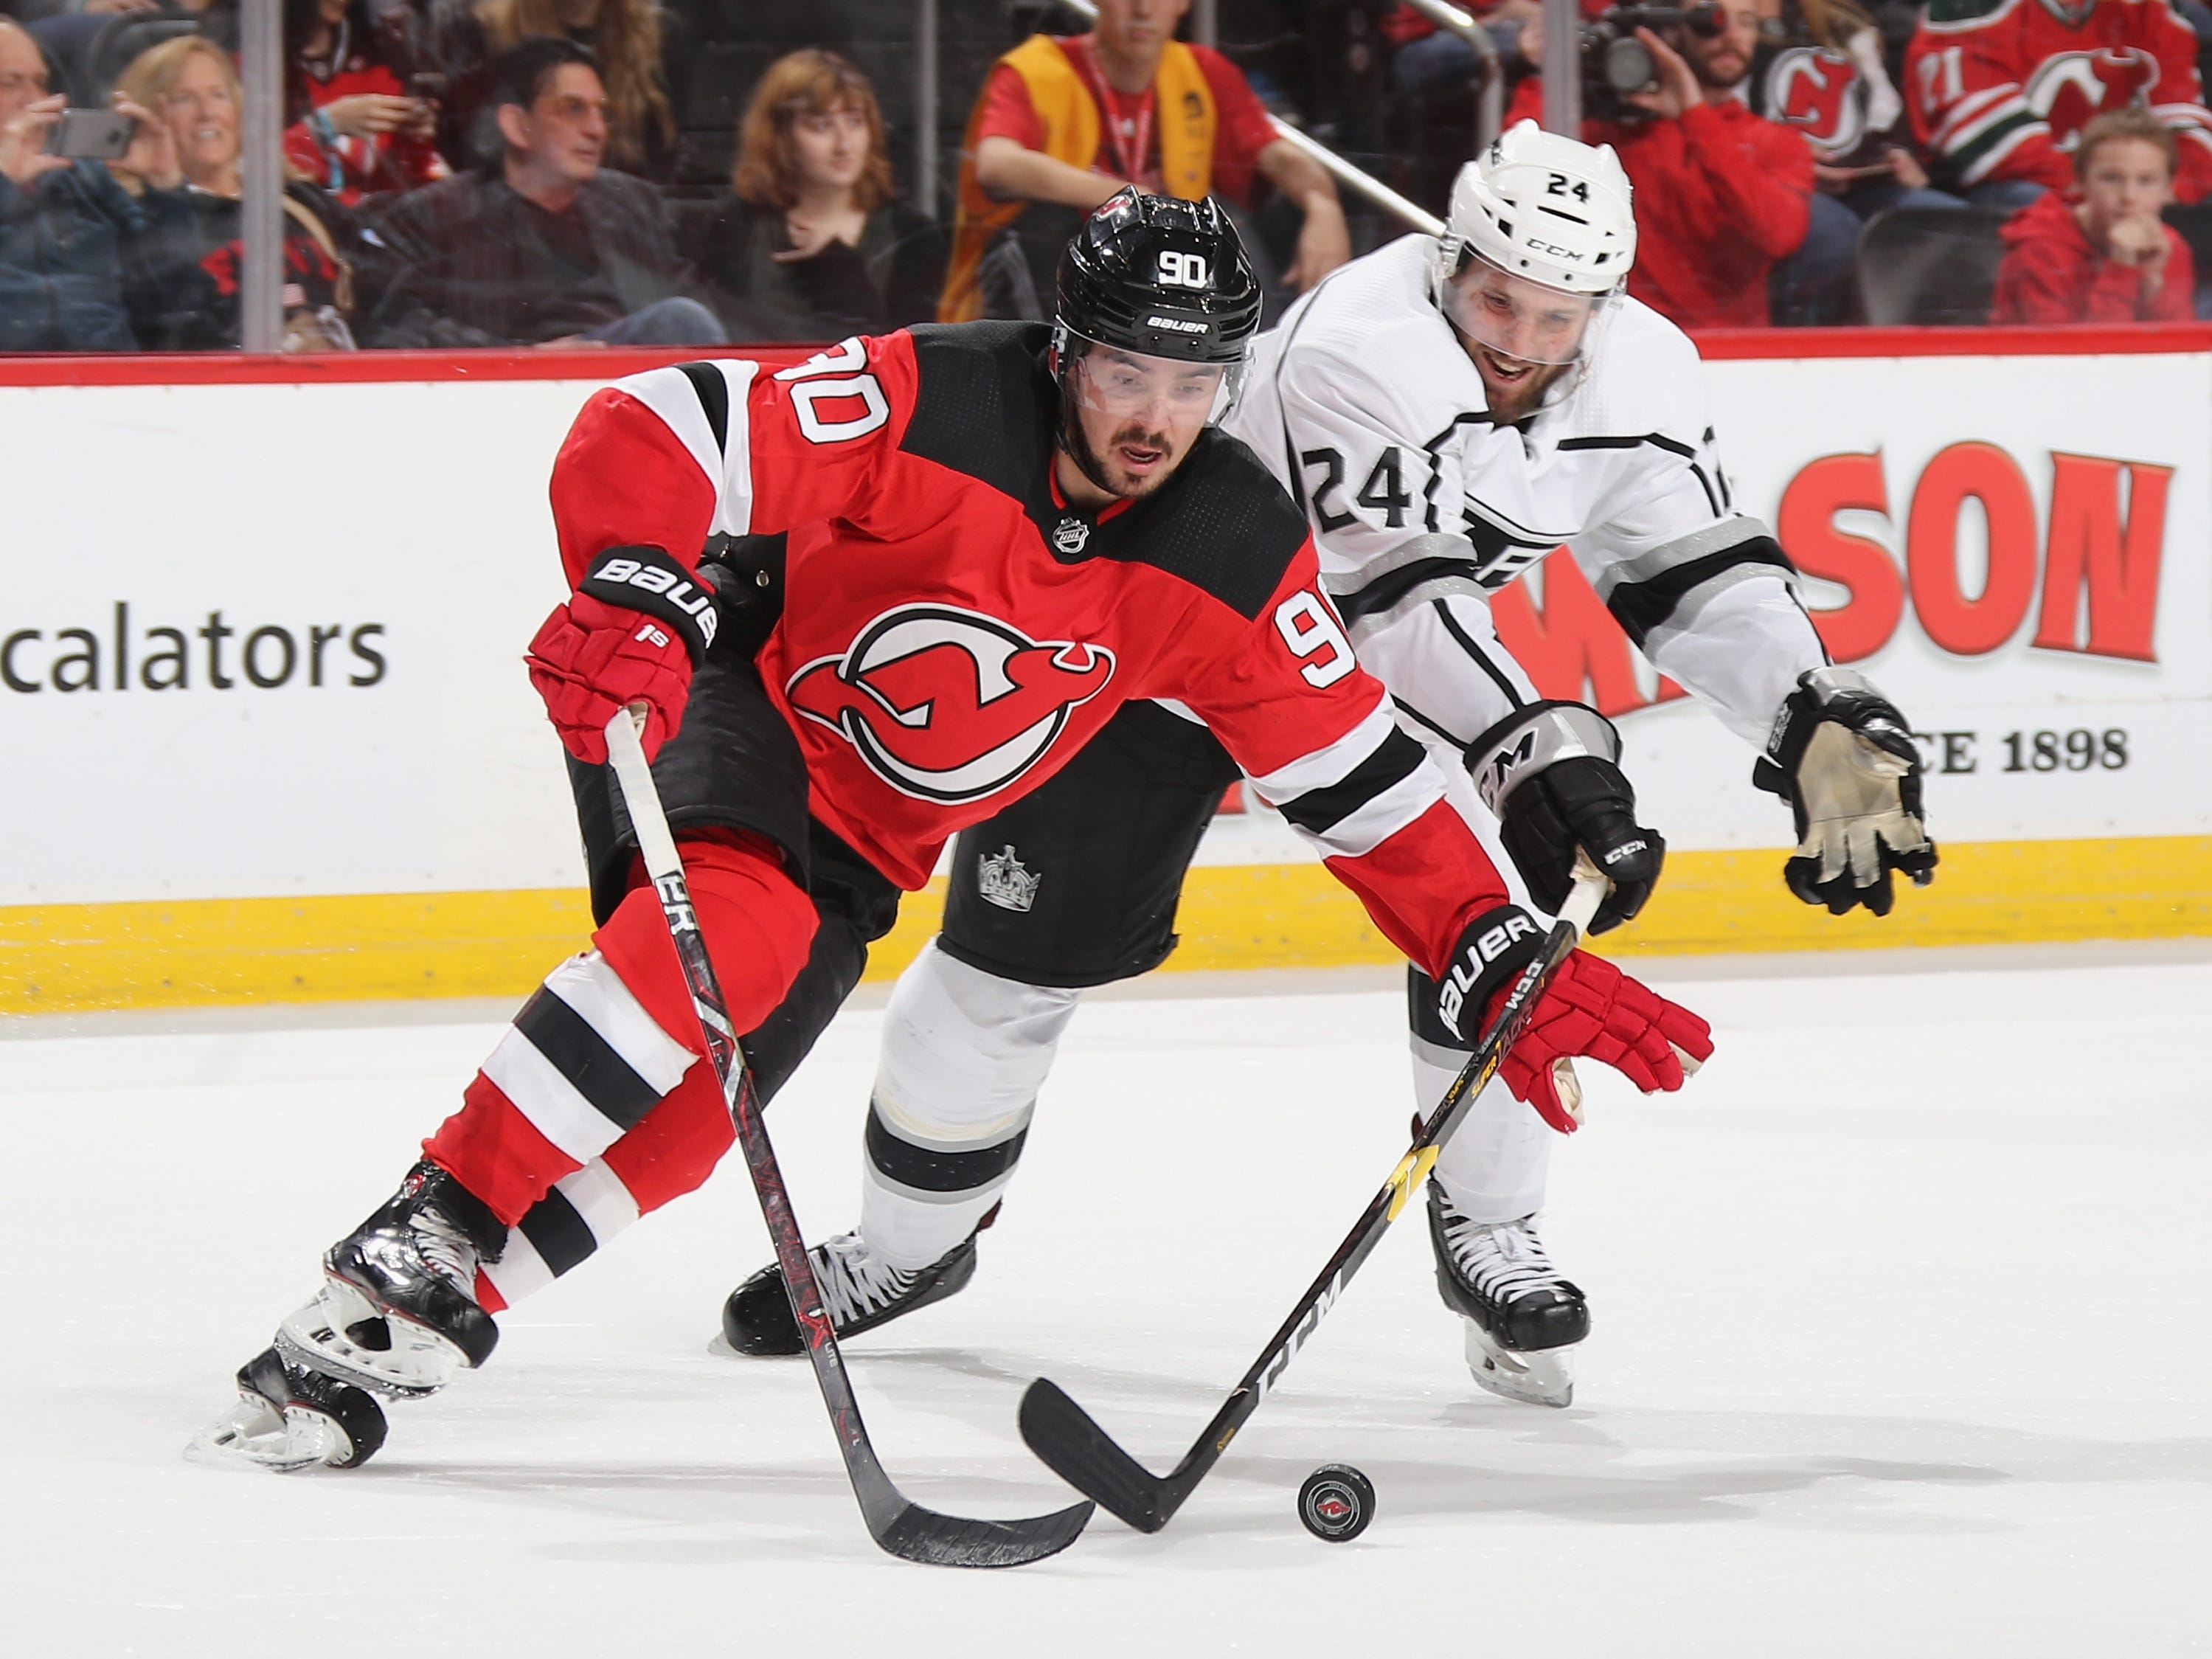 11. Marcus Johansson, LW, New Jersey:  The Devils have disappointed this season, and Johansson hasn't had a great season and is UFA on July 1. Some team likely will take a chance on this playoff veteran.